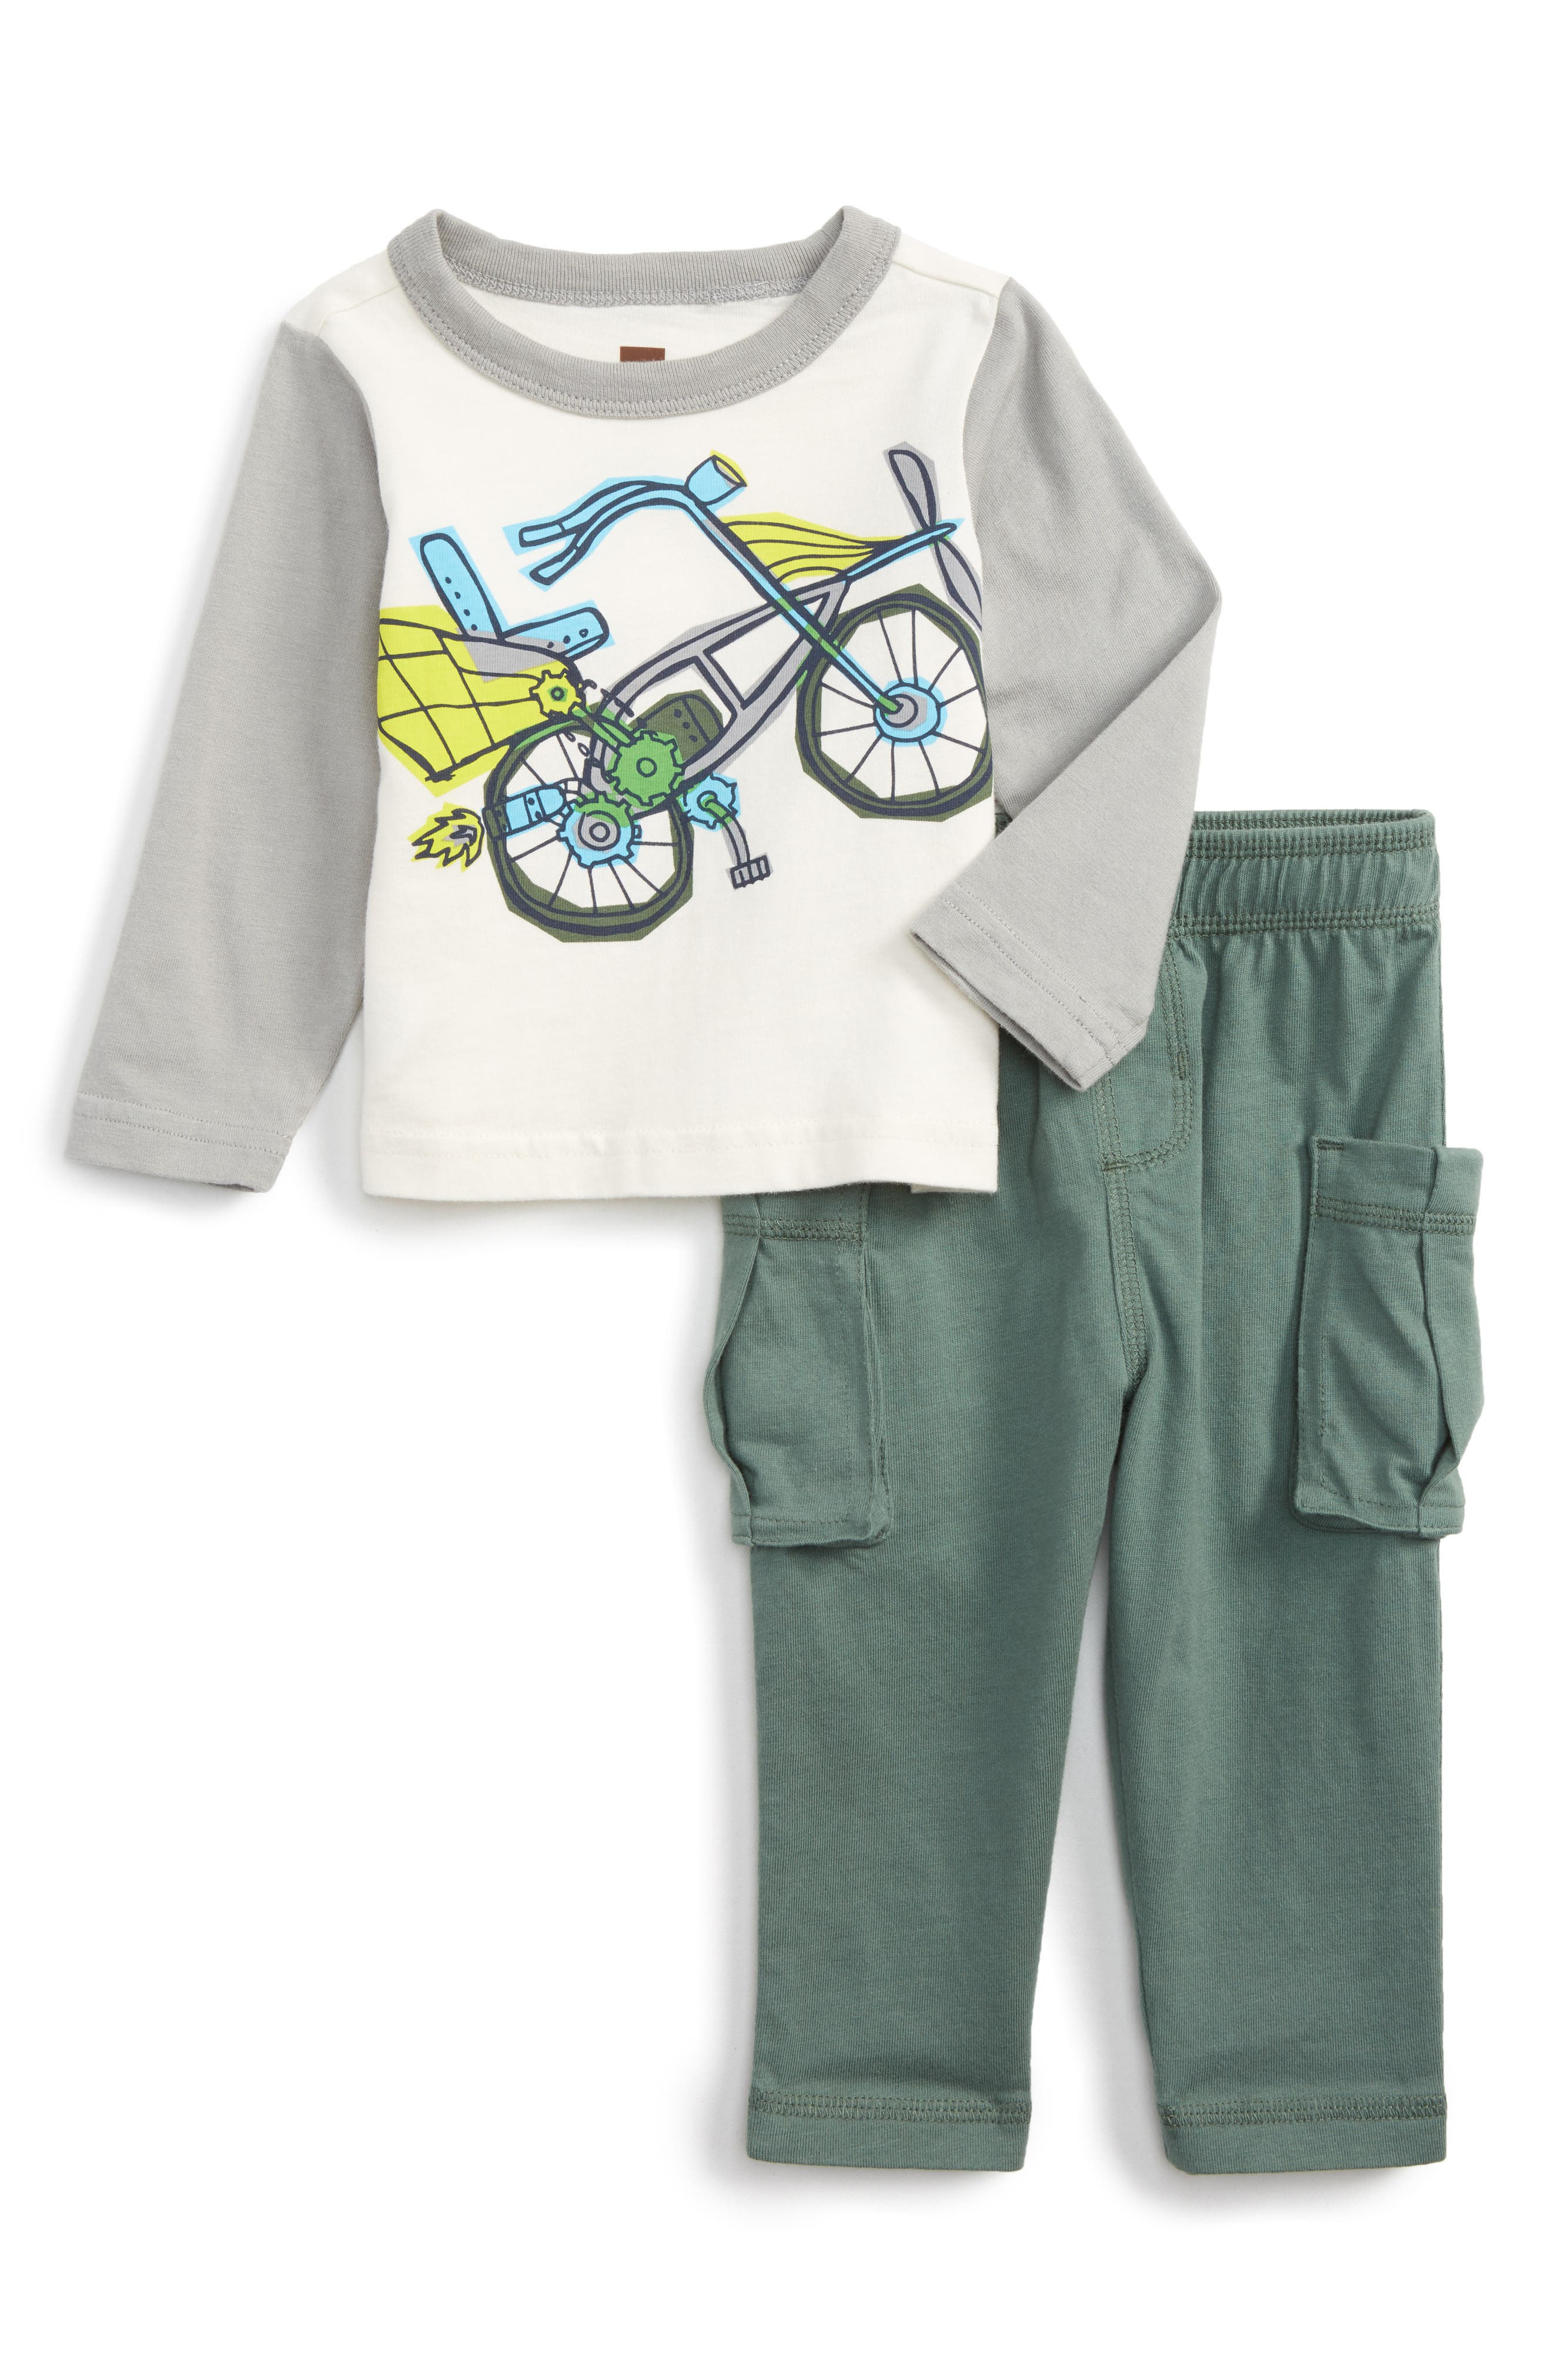 Main Image - Tea Collection Flying Scot T-Shirt & Pants Set (Baby Boys)